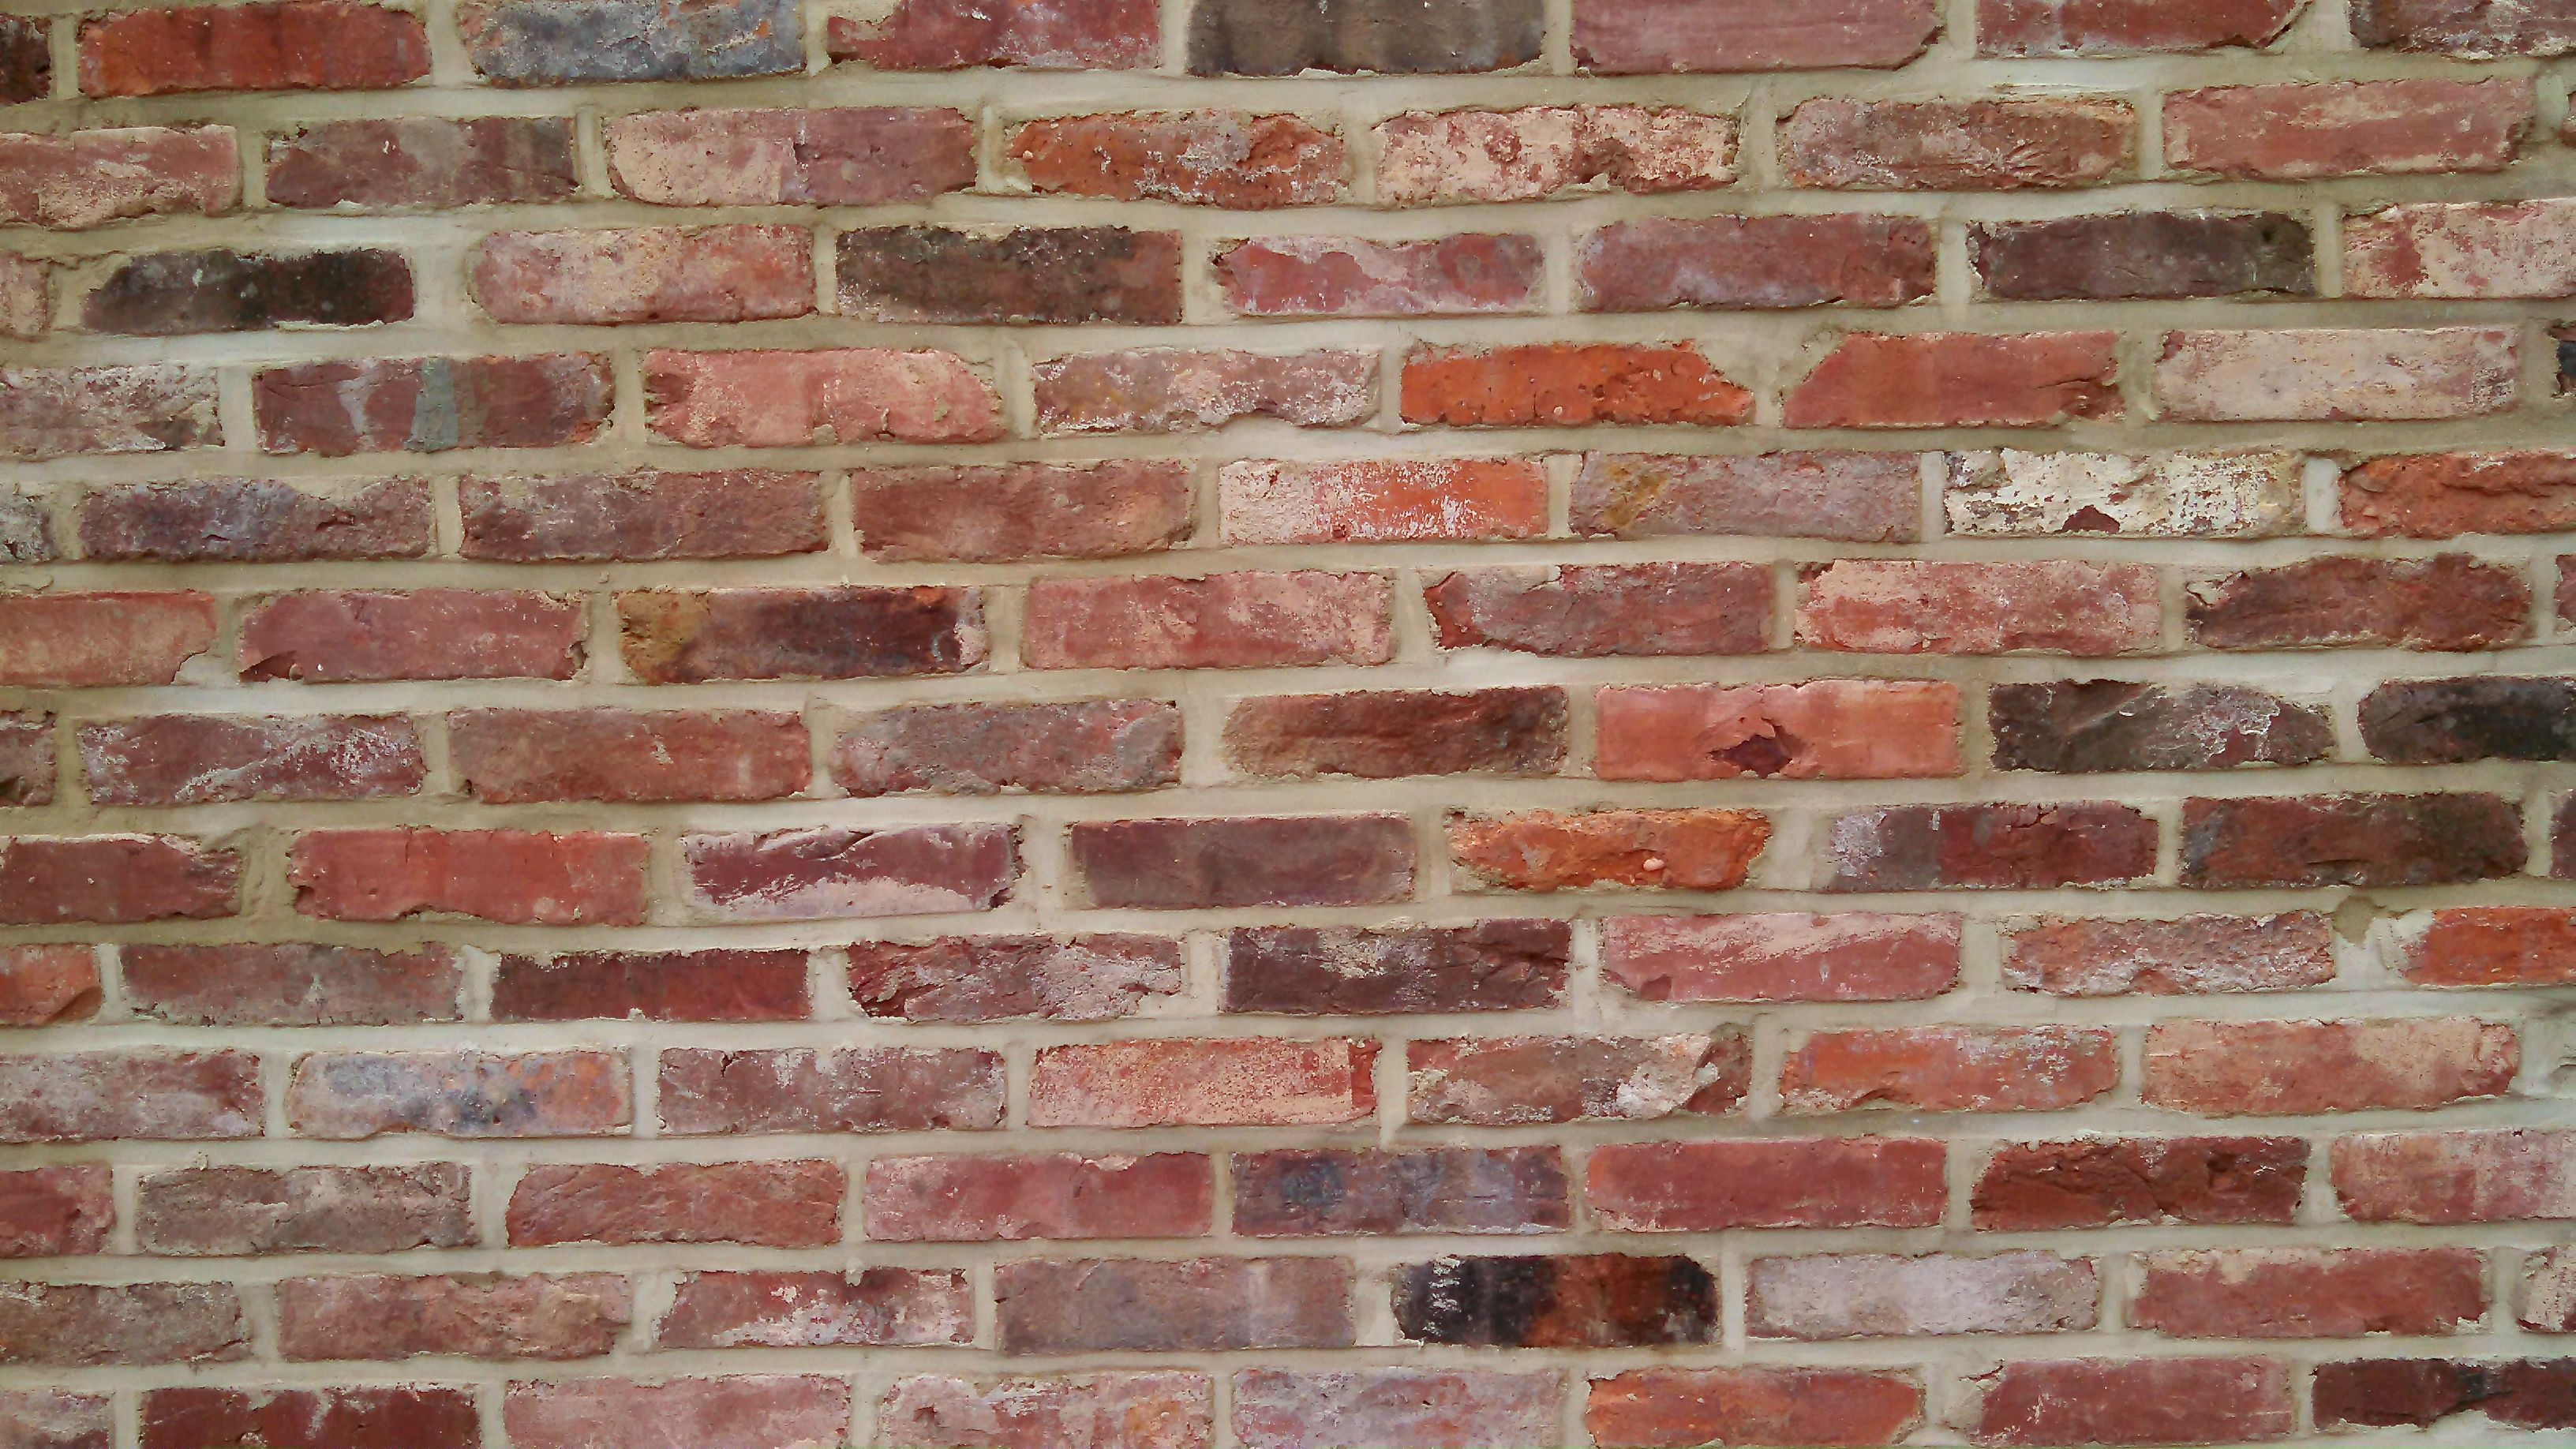 Brick Veneer Collection: Reclaimed Thin Brick Veneer